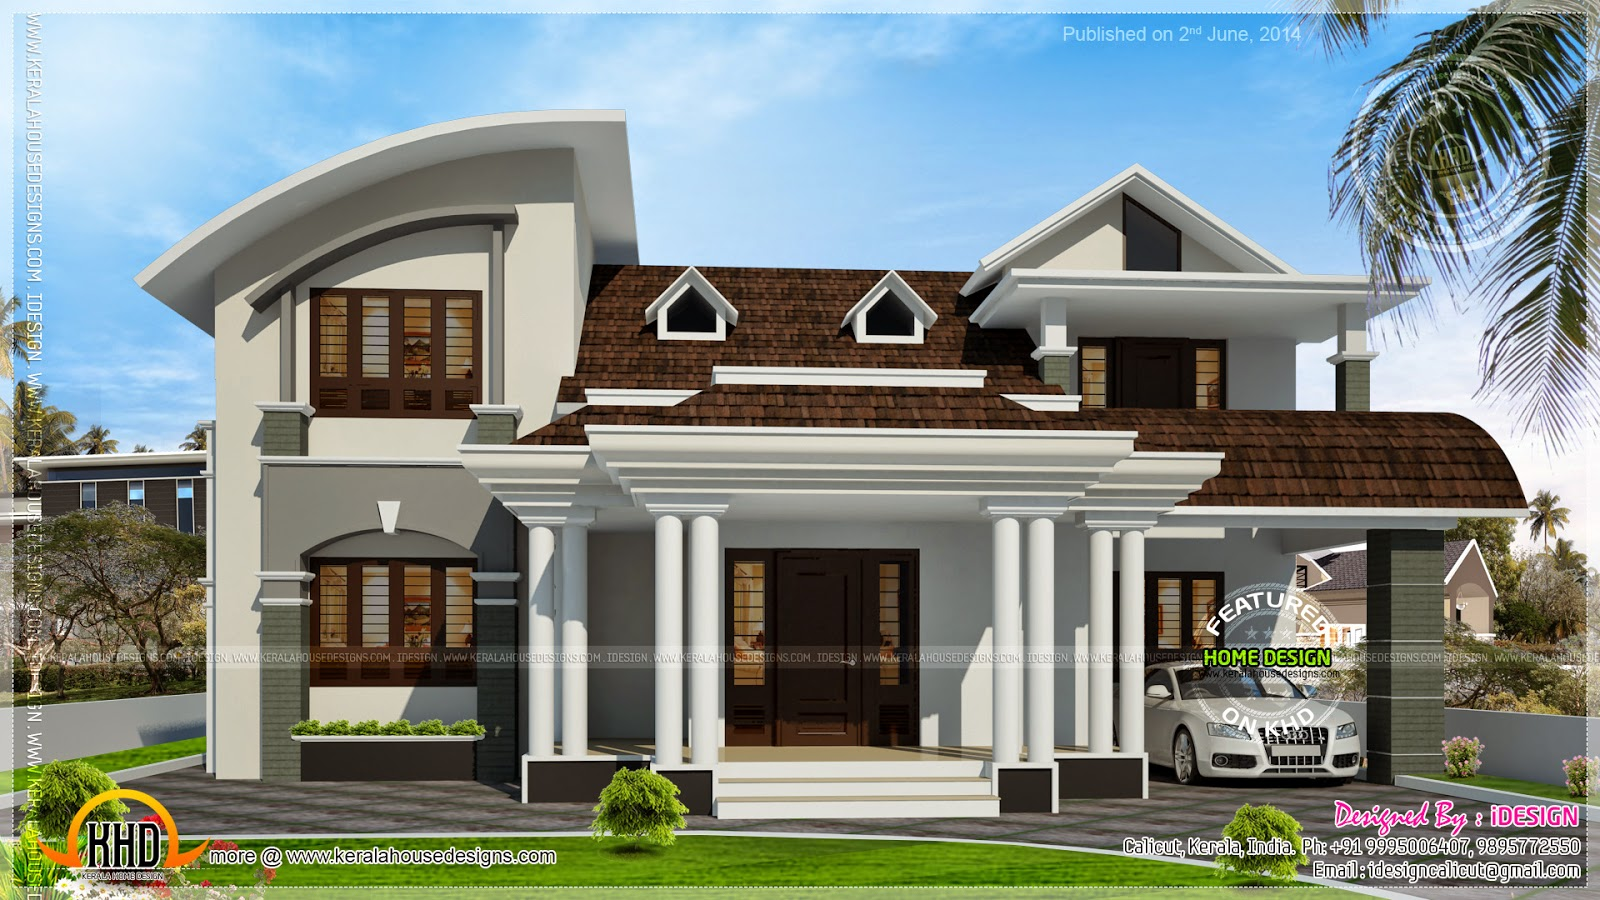 House with beautiful dormer windows kerala home design for Window design for house